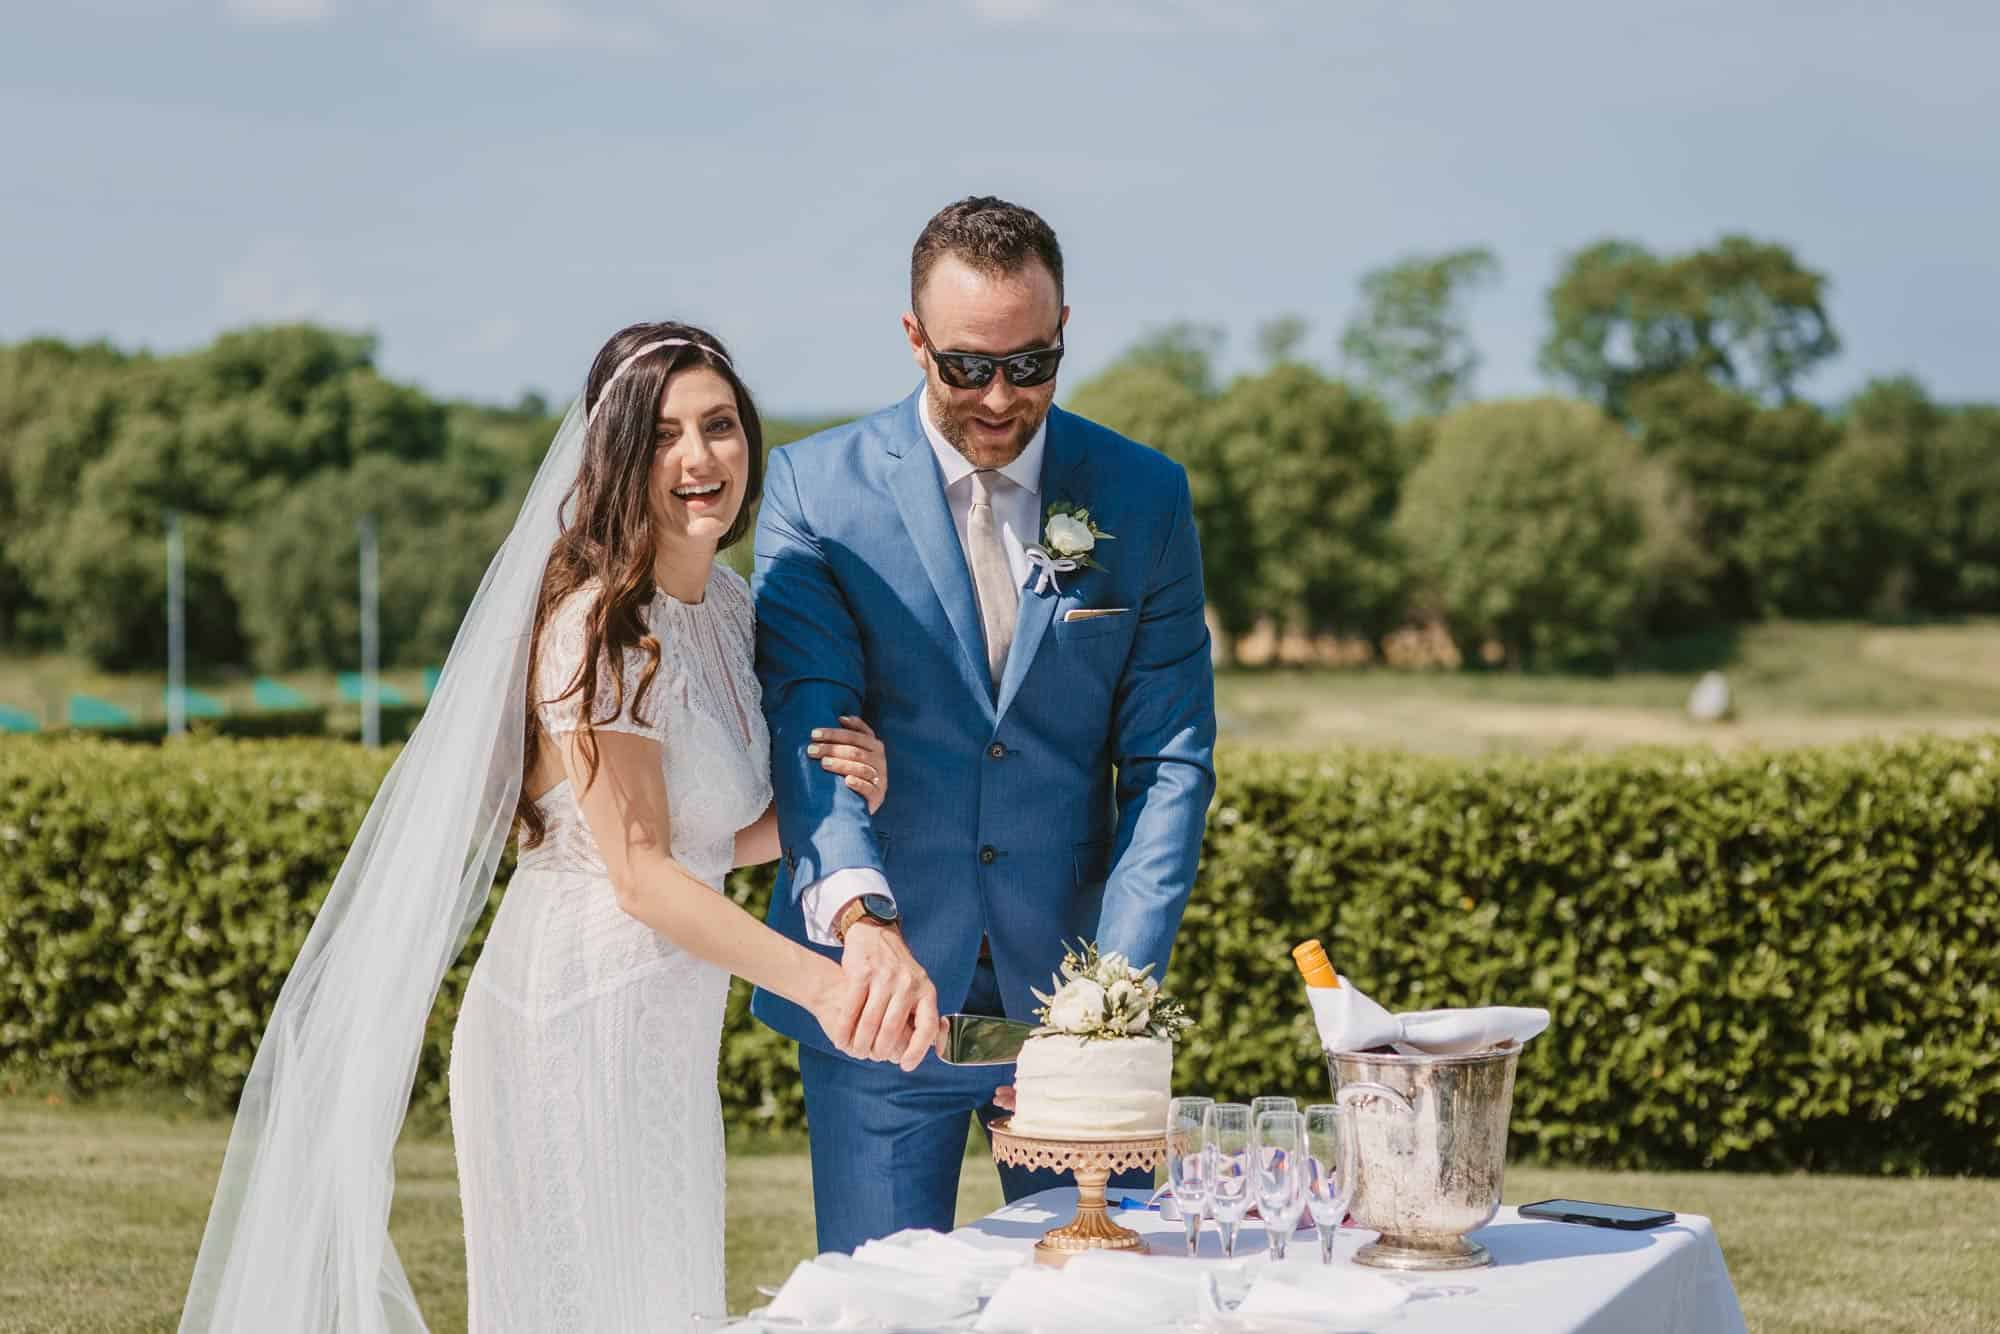 Elopement videographer Ireland, couple cut their wedding cake